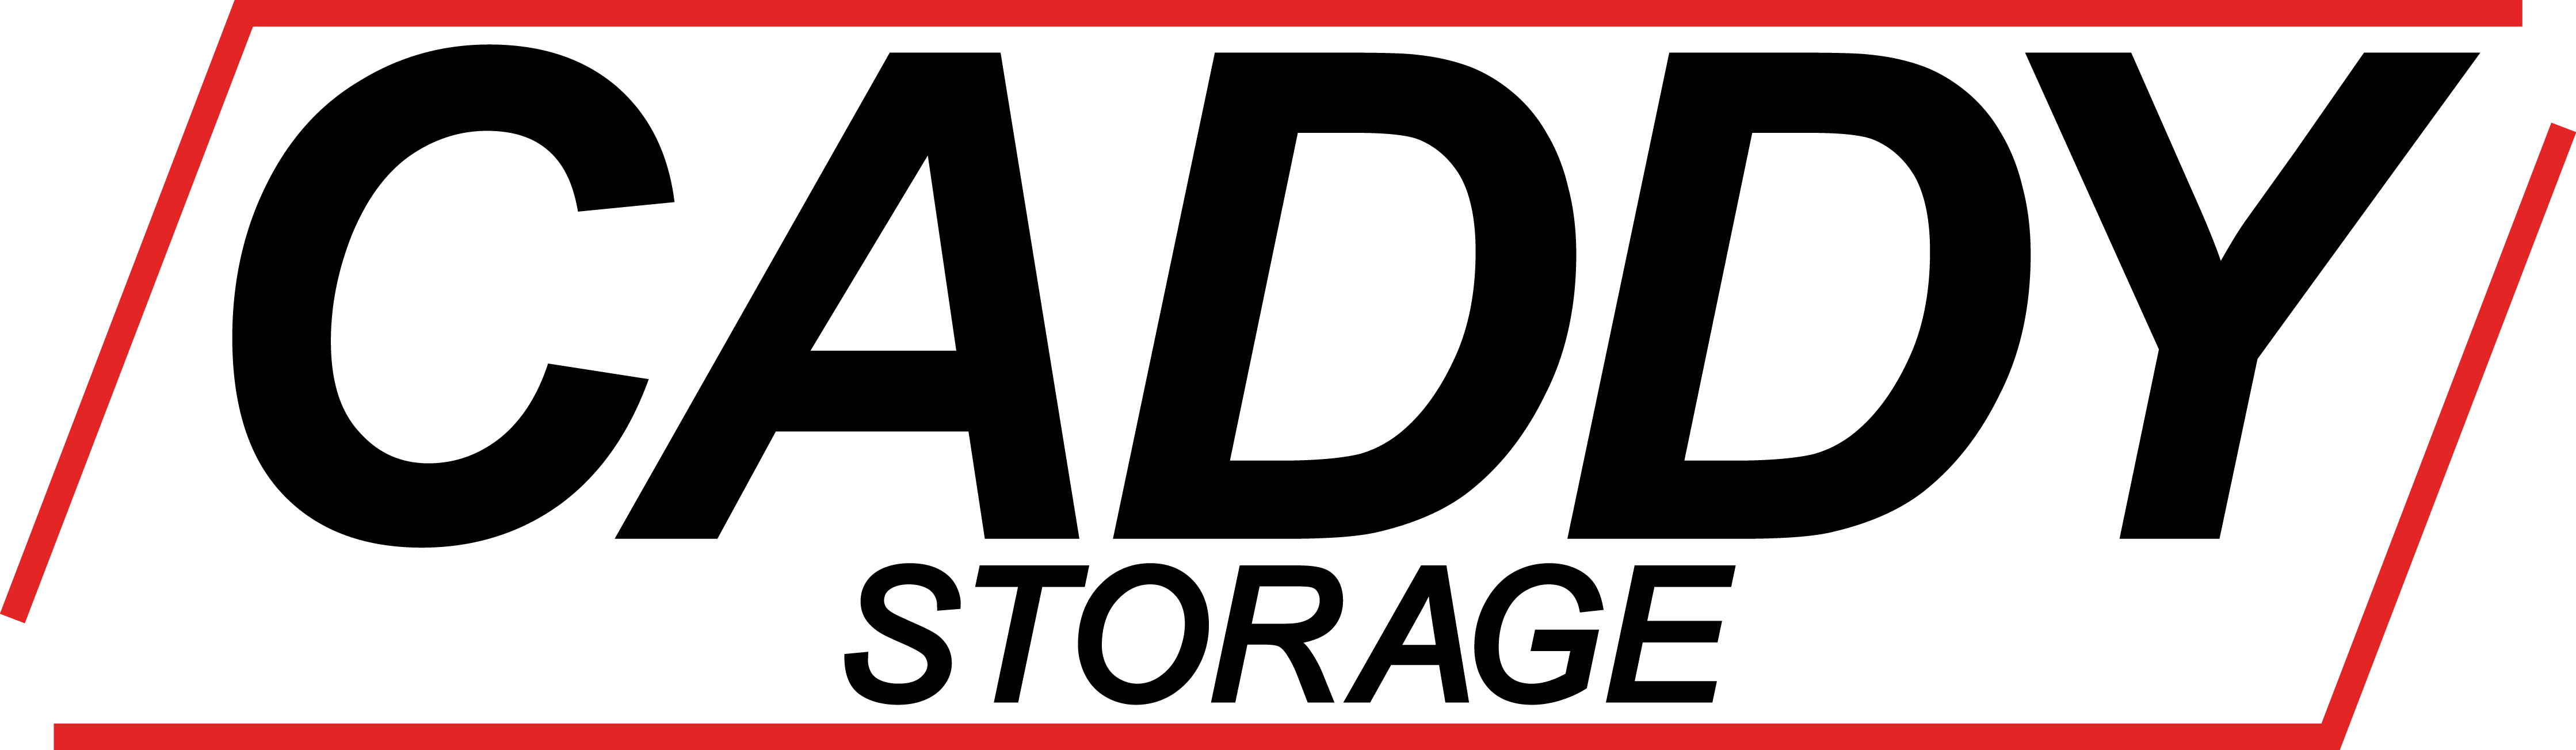 CaddyStorage_Logo_Colour